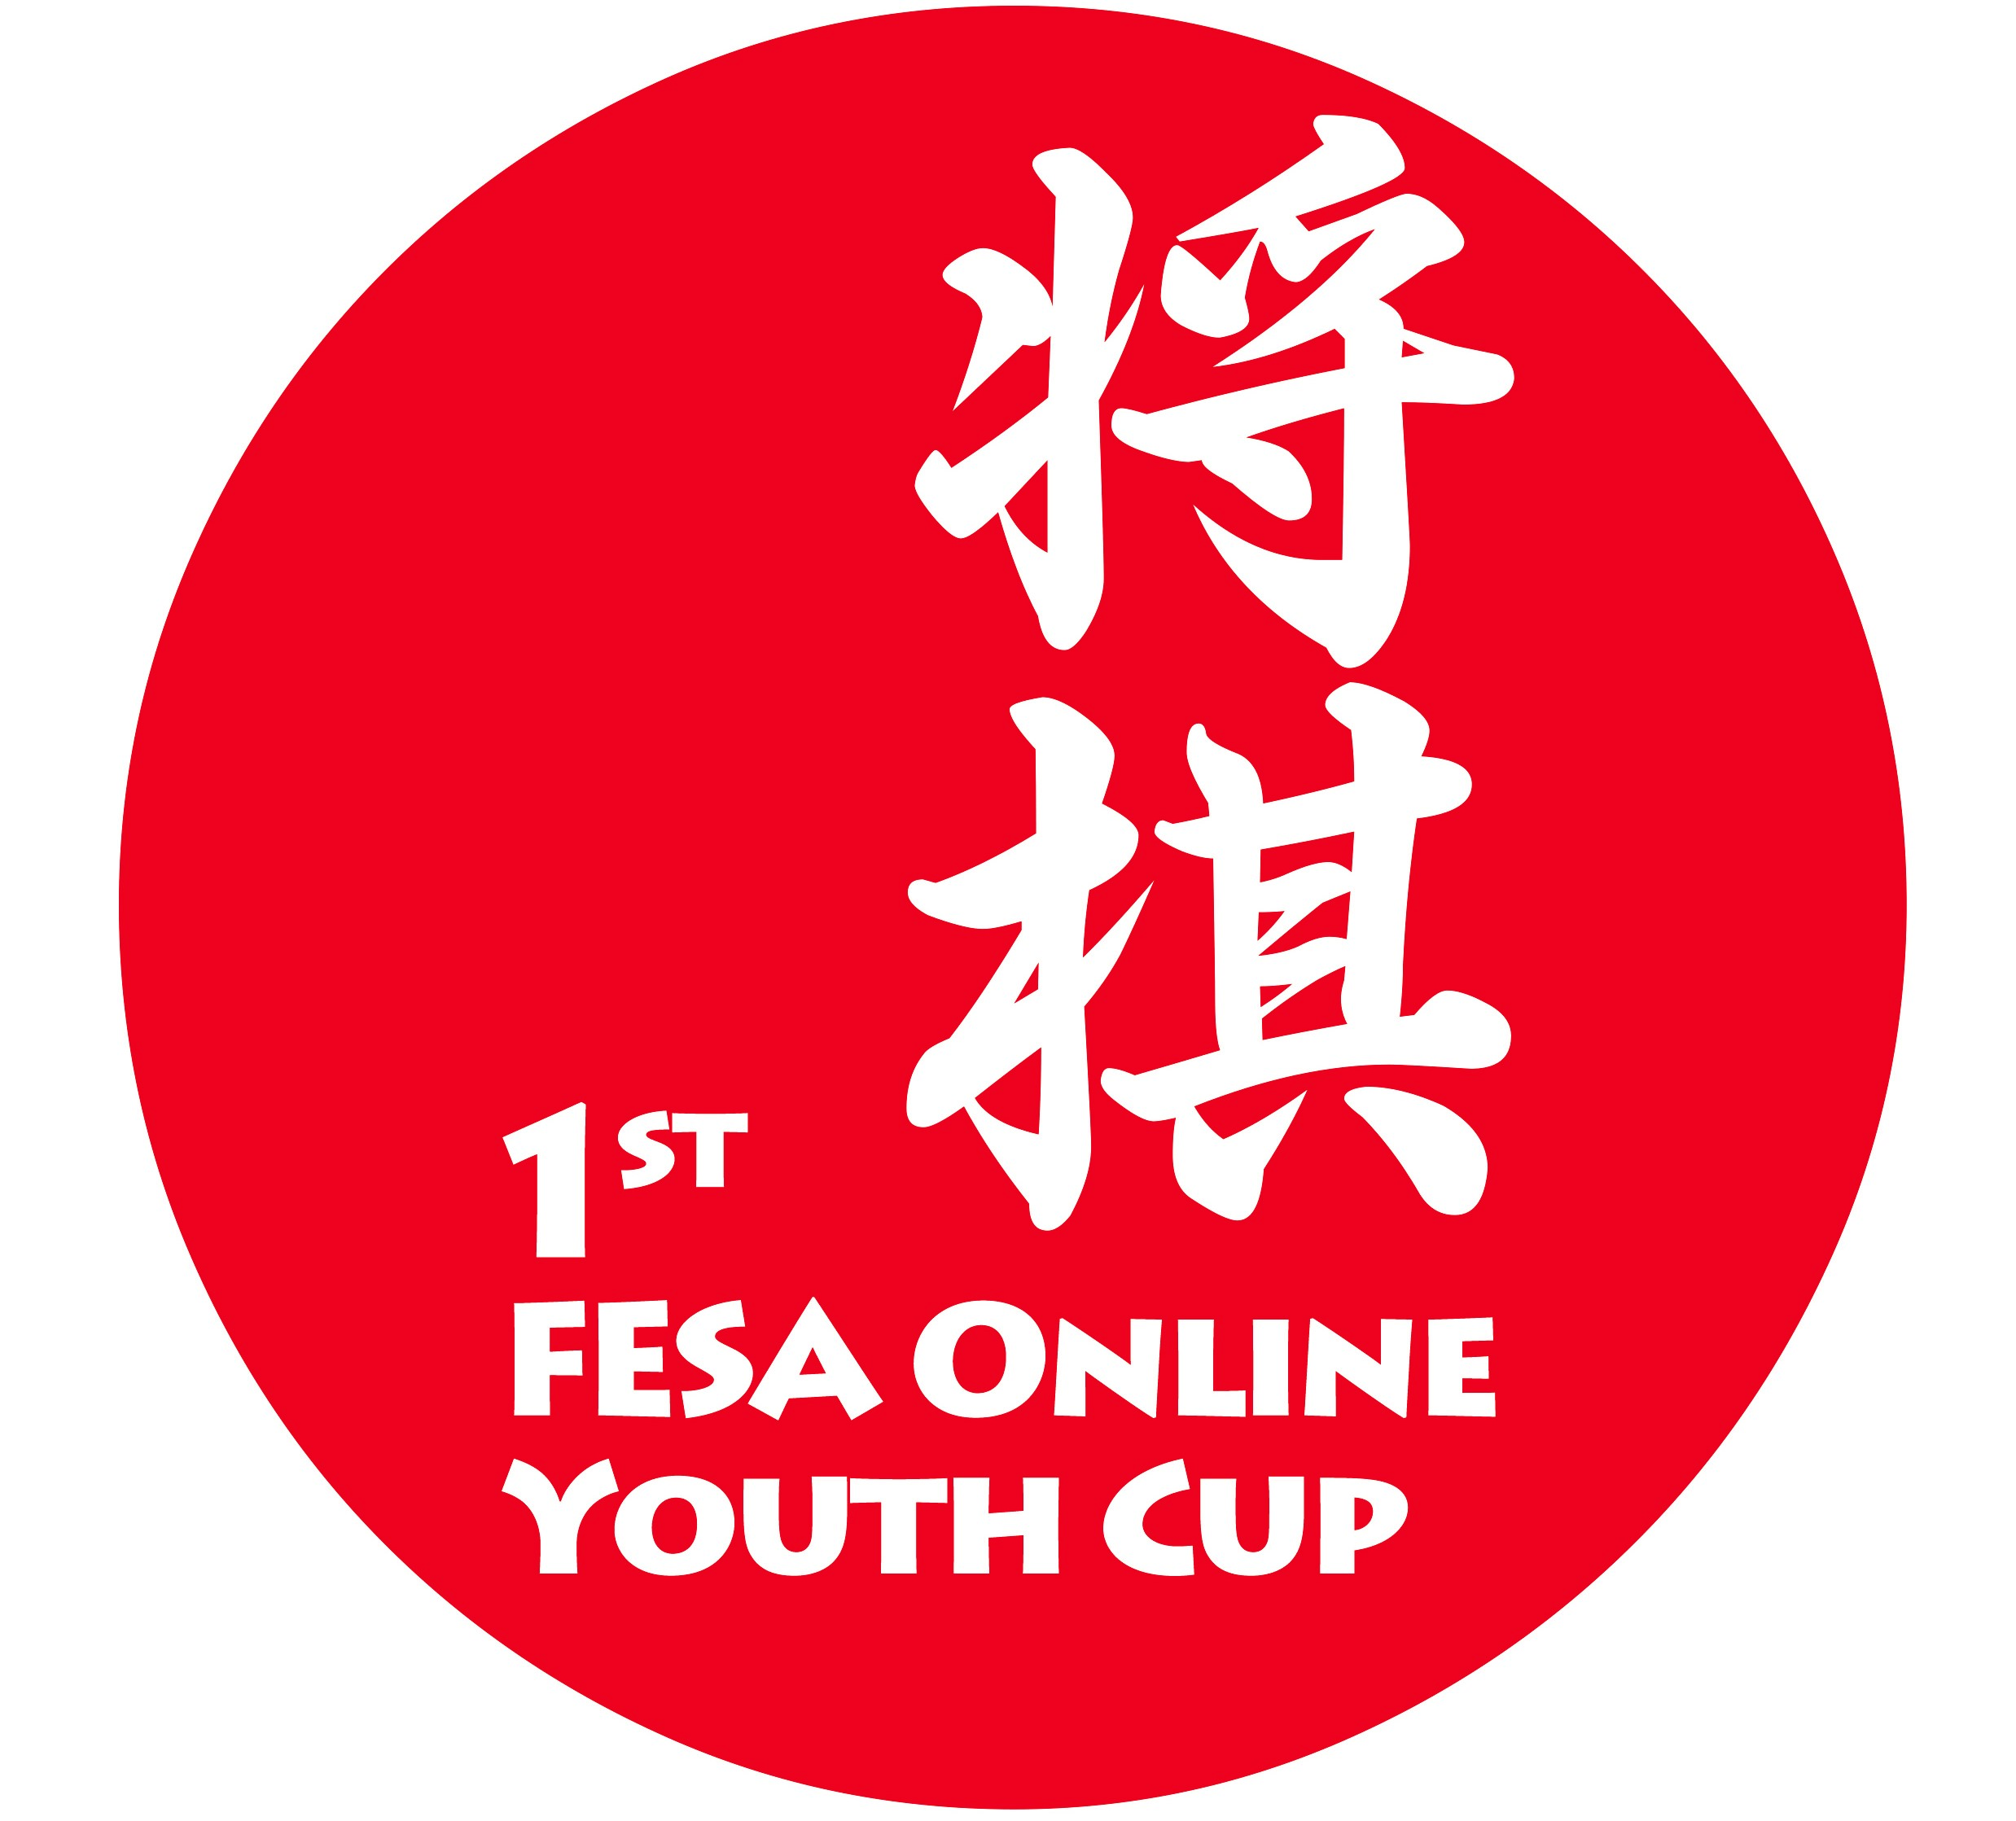 1st FESA ONLINE YOUTH CUP